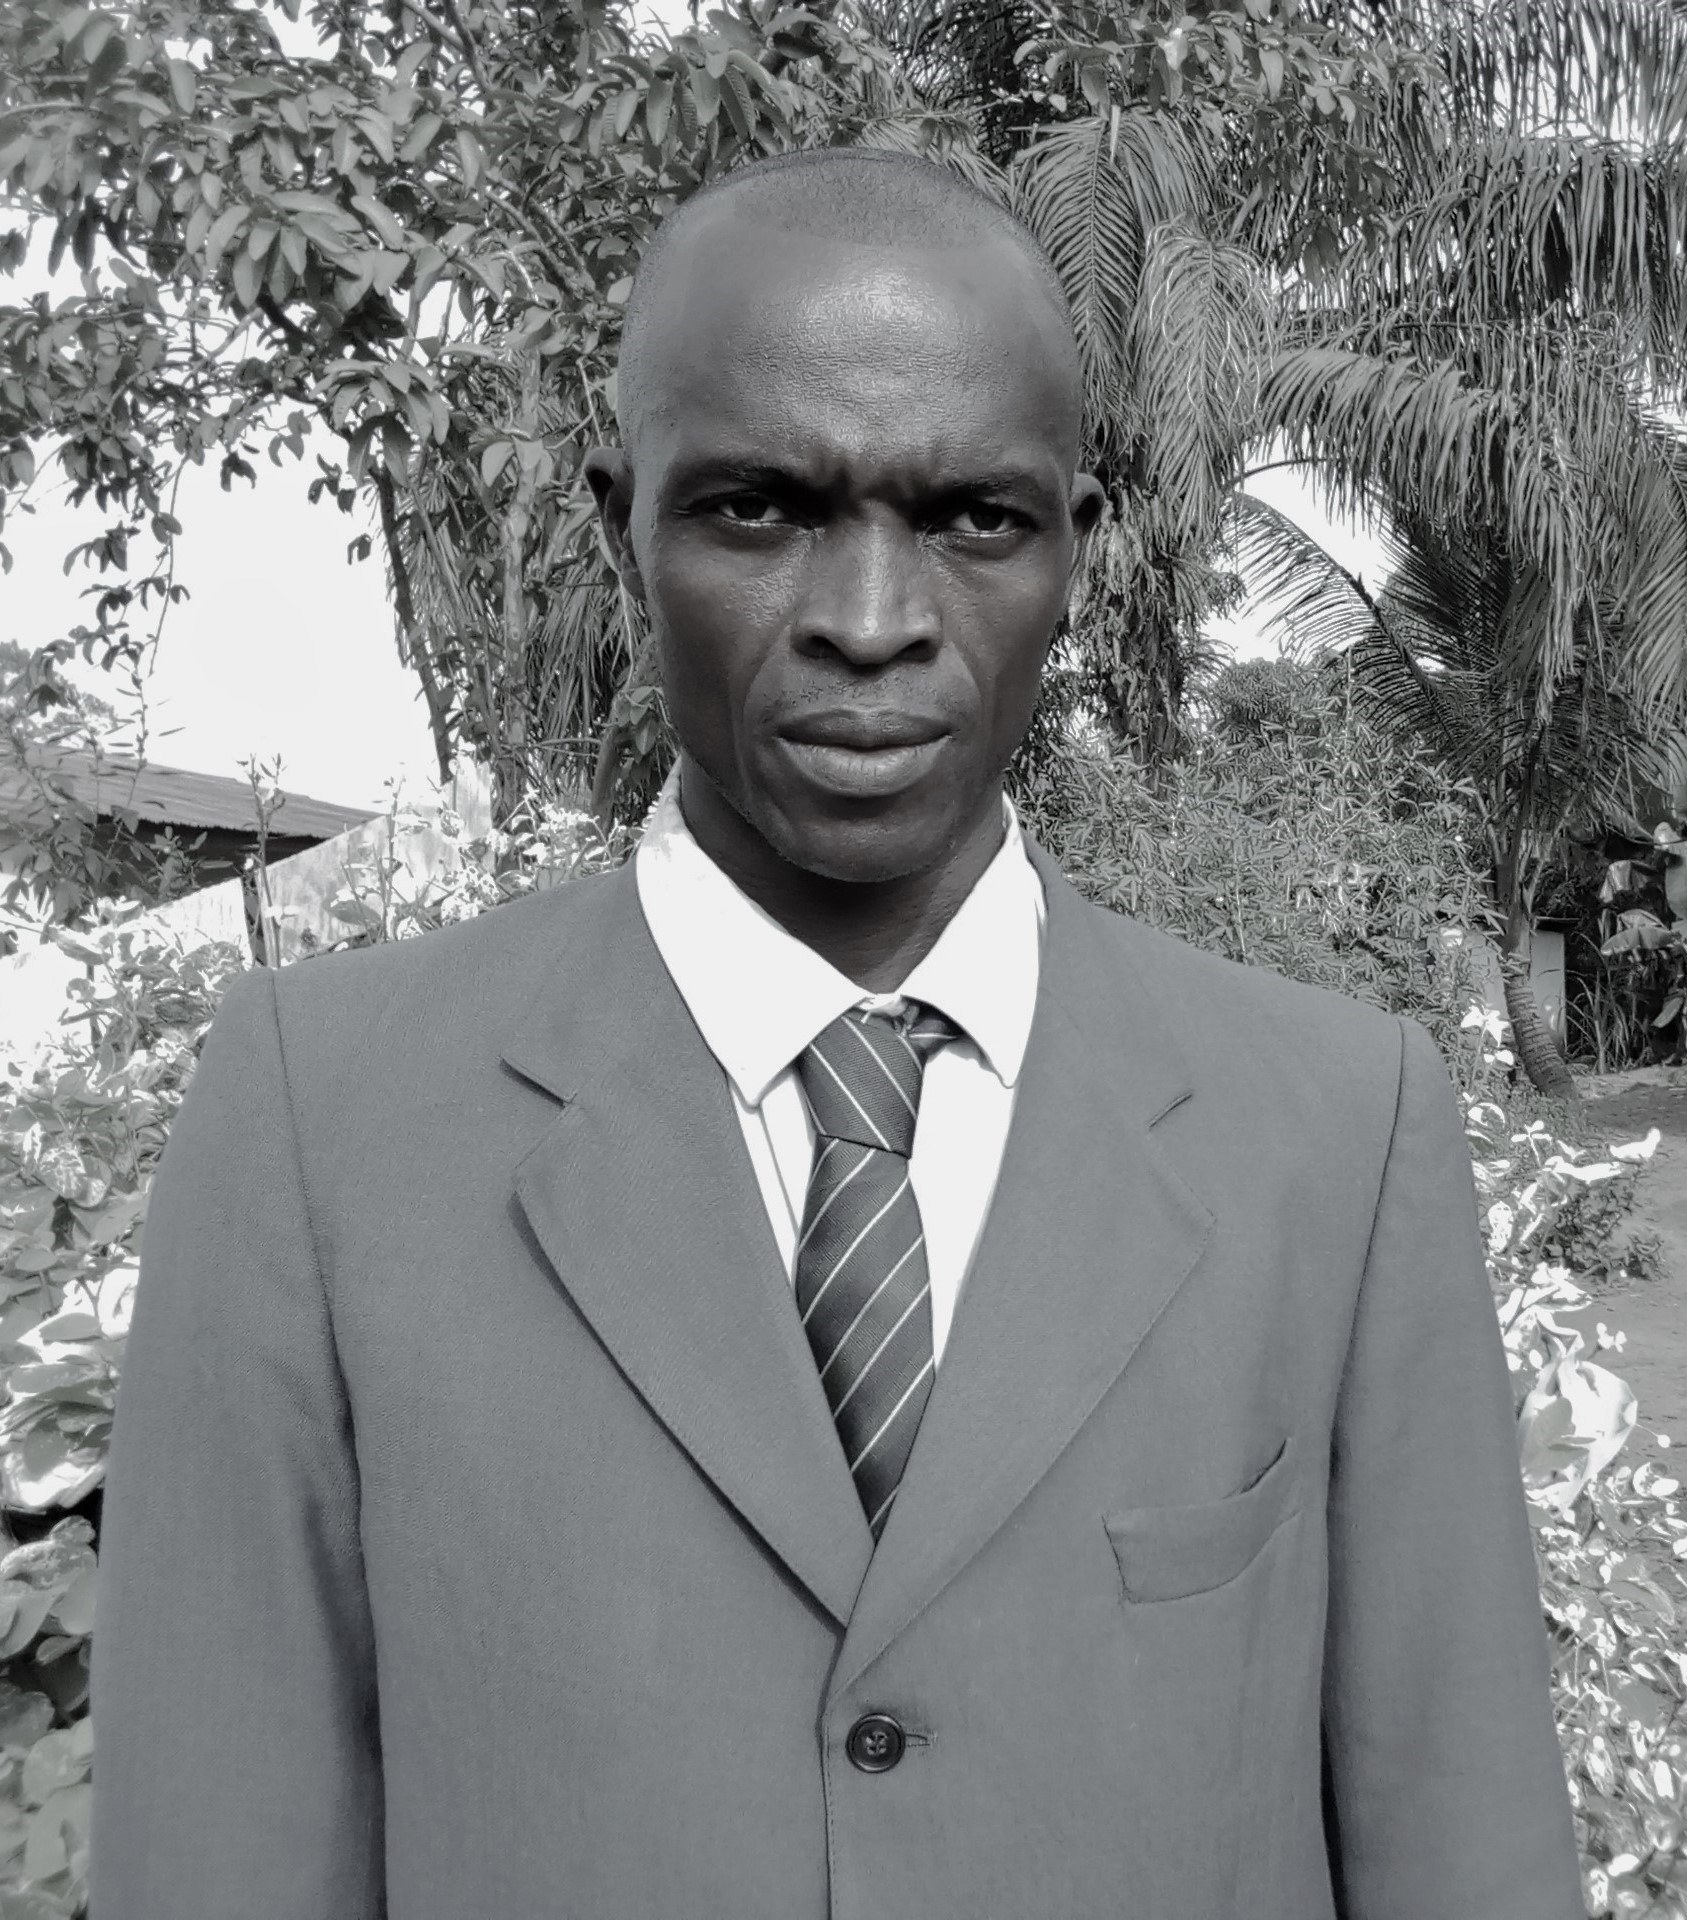 Alimamy Samura(Project Supervisor) - I am Alimamy Samura, born on the 27th day of November, 1977 in Lunsar Town. Lunsar Town is in Port Loko District in the Northern Province of Sierra Leone. I am a First Class Sierra Leonean citizen belonging to the Limba ethnic group. I did my Primary School Education at the Roman Catholic Primary School in Lunsar and further with my Secondary School Education at the Marampa Islamic Secondary School in Lunsar where I obtained a General Certificate of Education Ordinary level. I further did a three years course at the St. Joseph Vocational Institute in Lunsar and graduated with a General Certificate in Agriculture. Not finding any employment, I introduced commercial bike riding in Marampa Chiefdom and Lunsar in particular. After three years as commercial driver, I was employed as Field Monitor at Royail Integrated Agricultural Development Project in the year 2004. In 2007 I was employed by the St. John of God Food Security Development Programme as a Field Supervisor. I found myself out of job when the Programme faced out and been out of employment at the outbreak of the Ebola epidemic in Sierra Leone. I joined the Task Force Commanders in the fight against the Ebola Virus Disease. I was later employed as Tally Clerk at Dawnus International in 2015 where I served before the closure of the company. I now find myself working for Schools and Health Foundation as Project Field Supervisor.